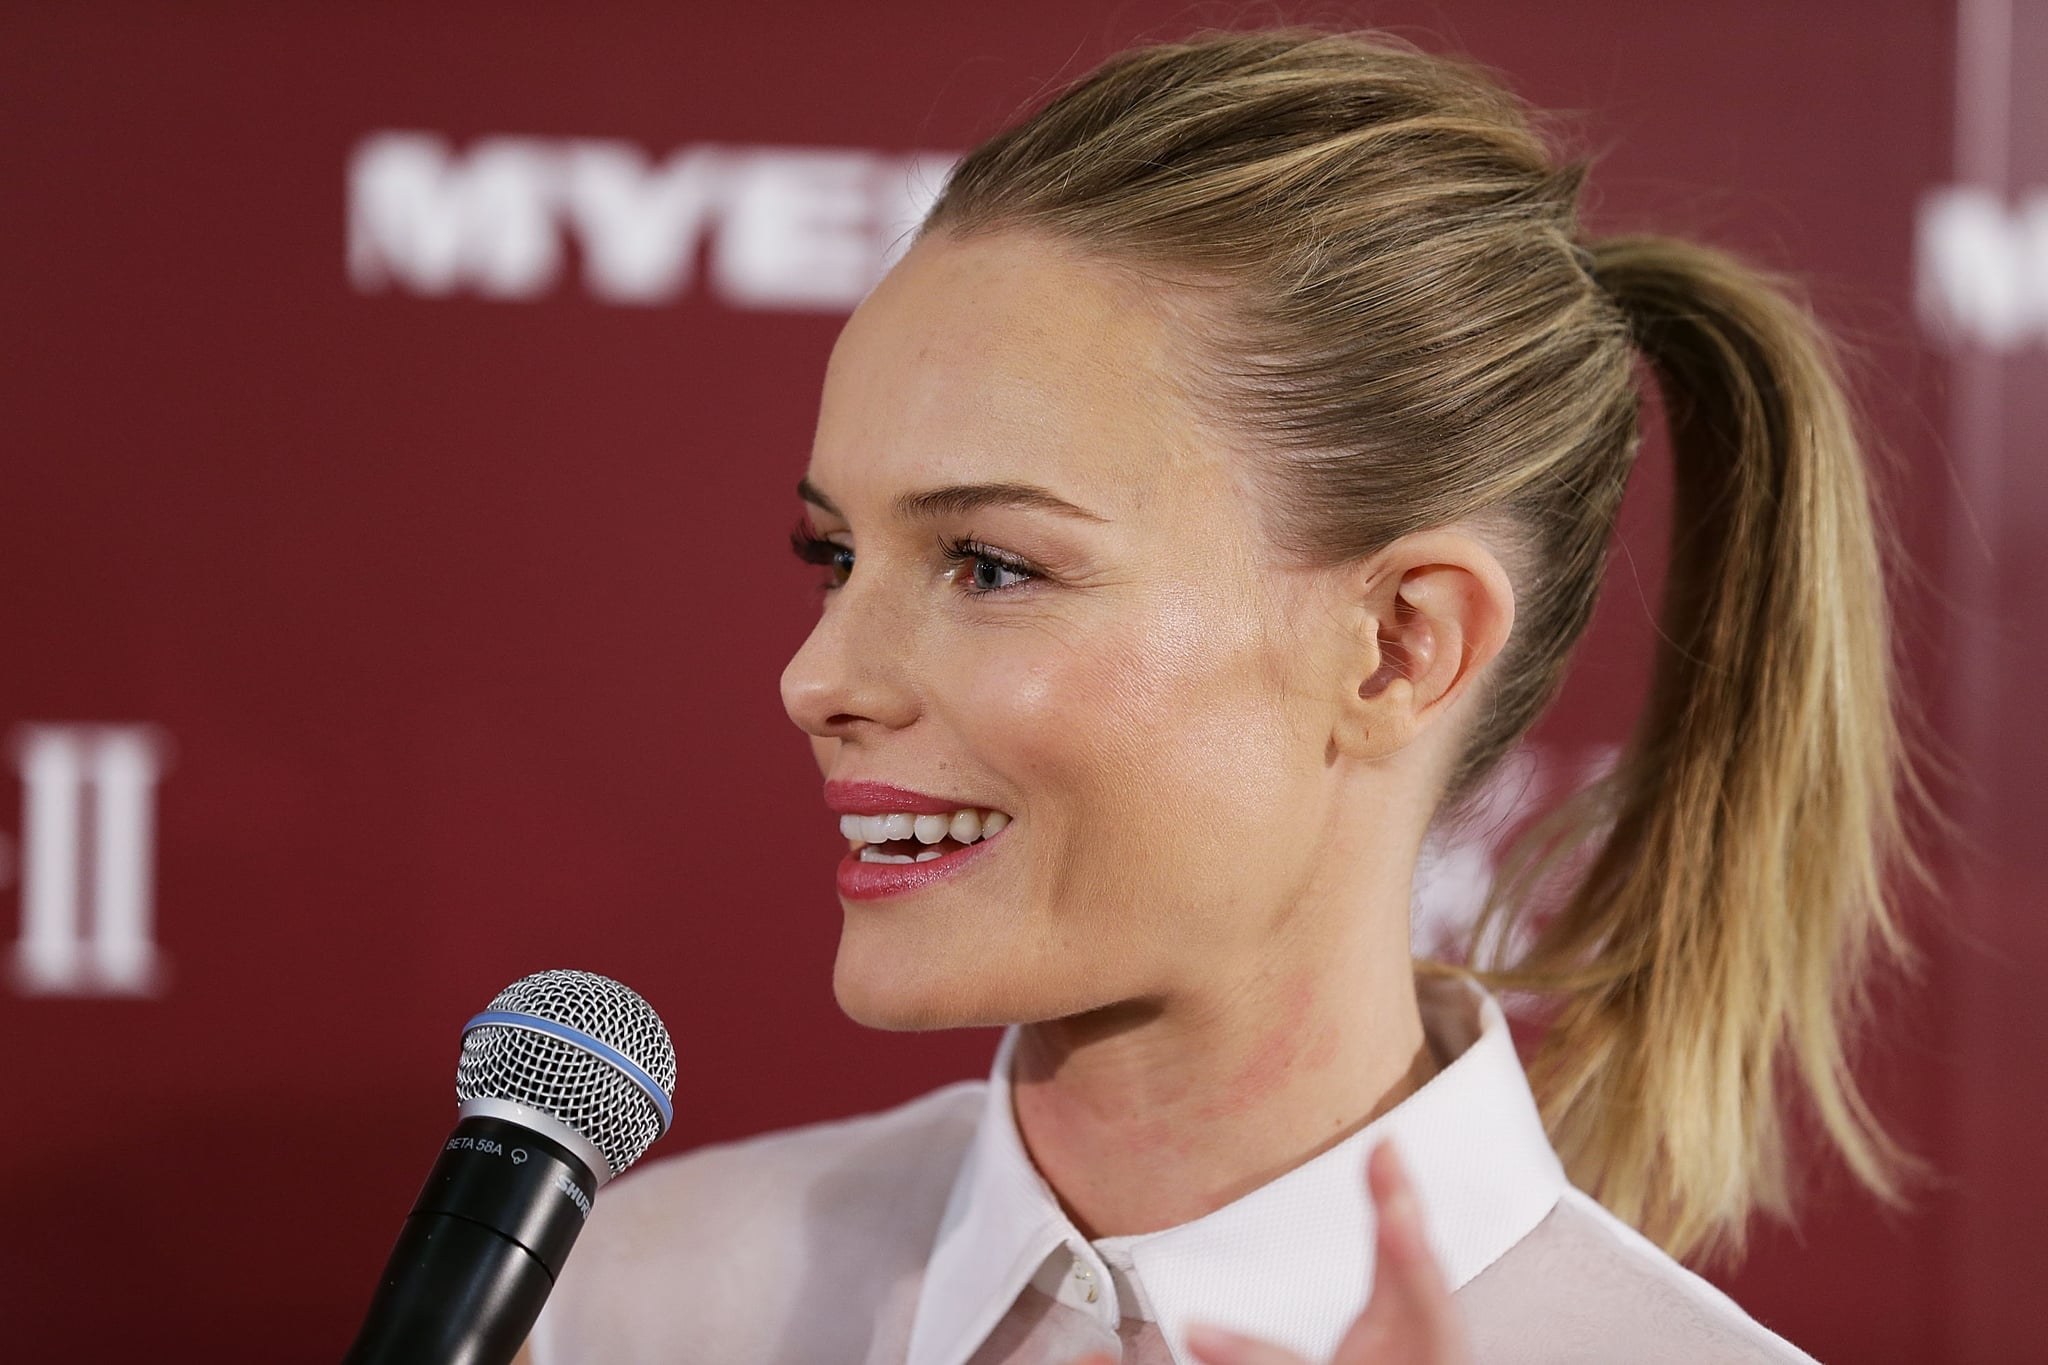 Kate Bosworth took the mic at a promotional event for her skin care line in Sydney.